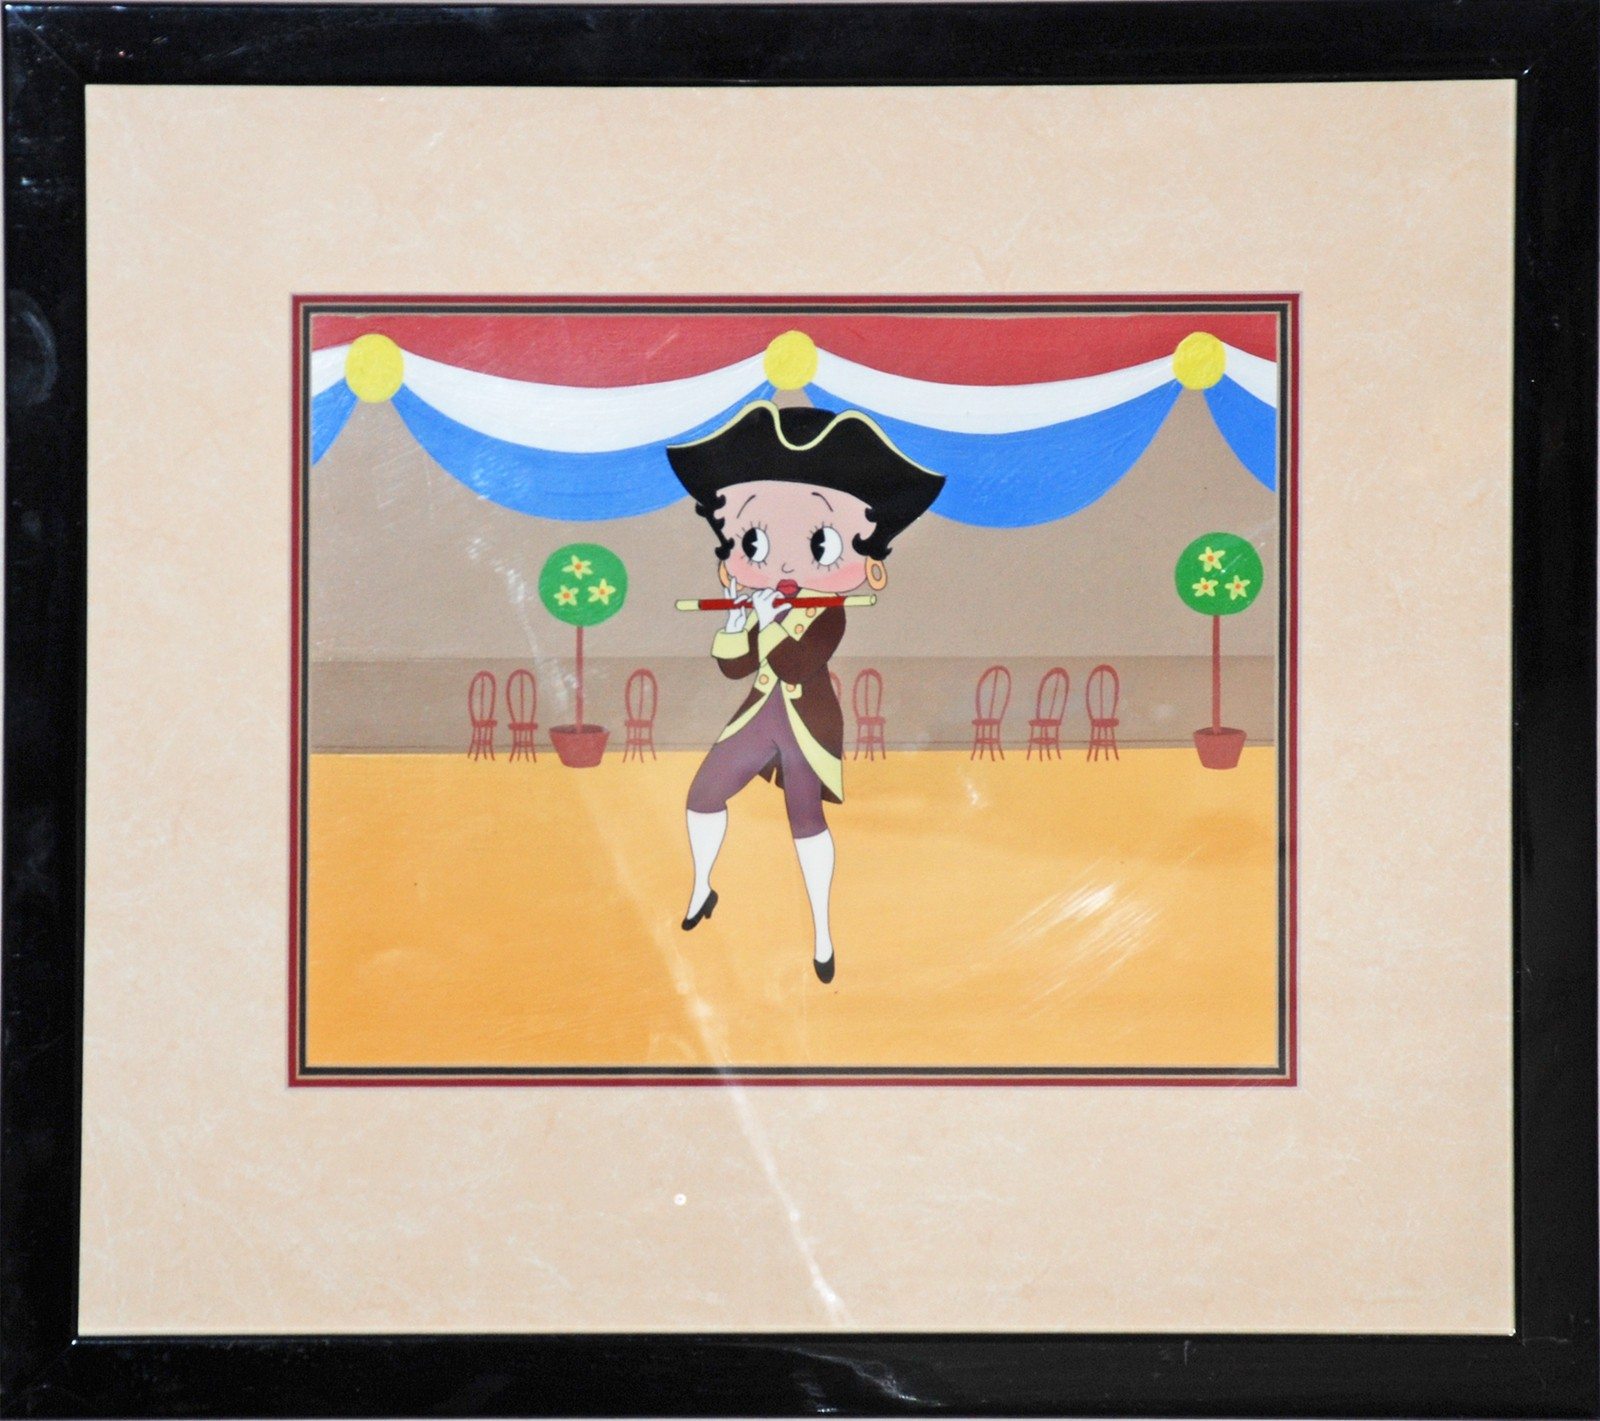 Old Fashioned Betty Boop Framed Pictures Crest - Framed Art Ideas ...